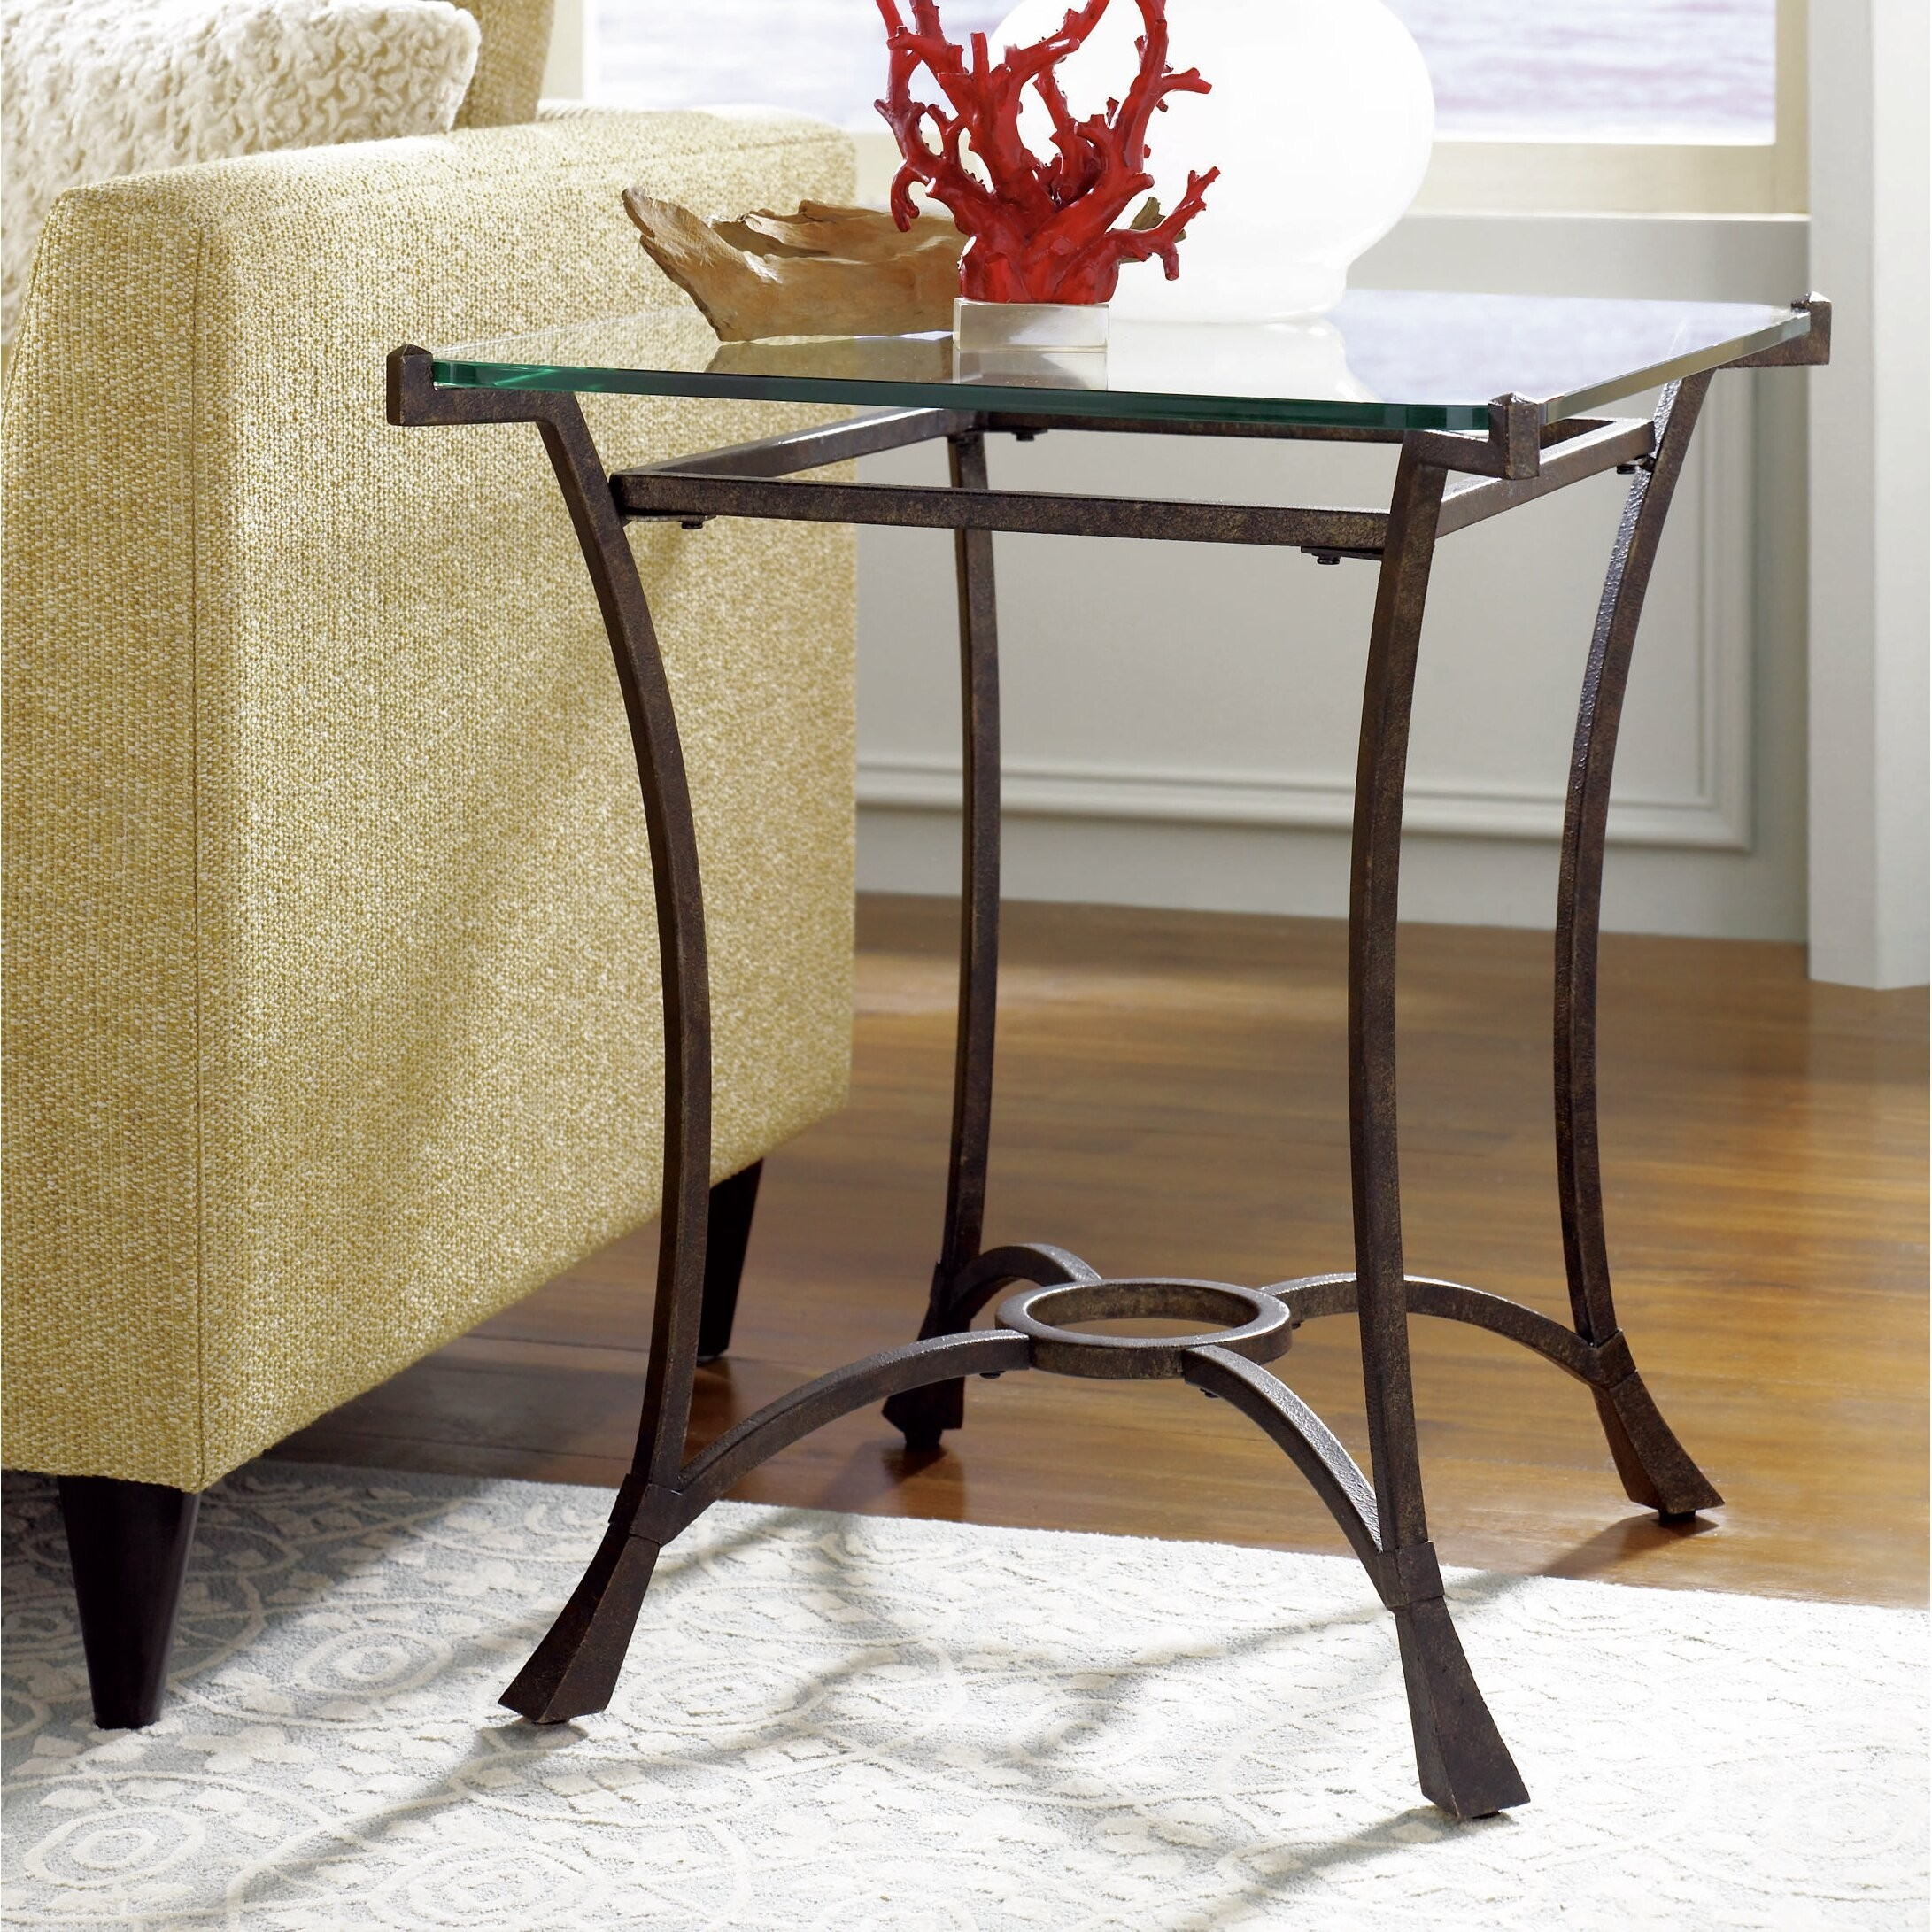 Ordinaire Glass Top End Tables Metal